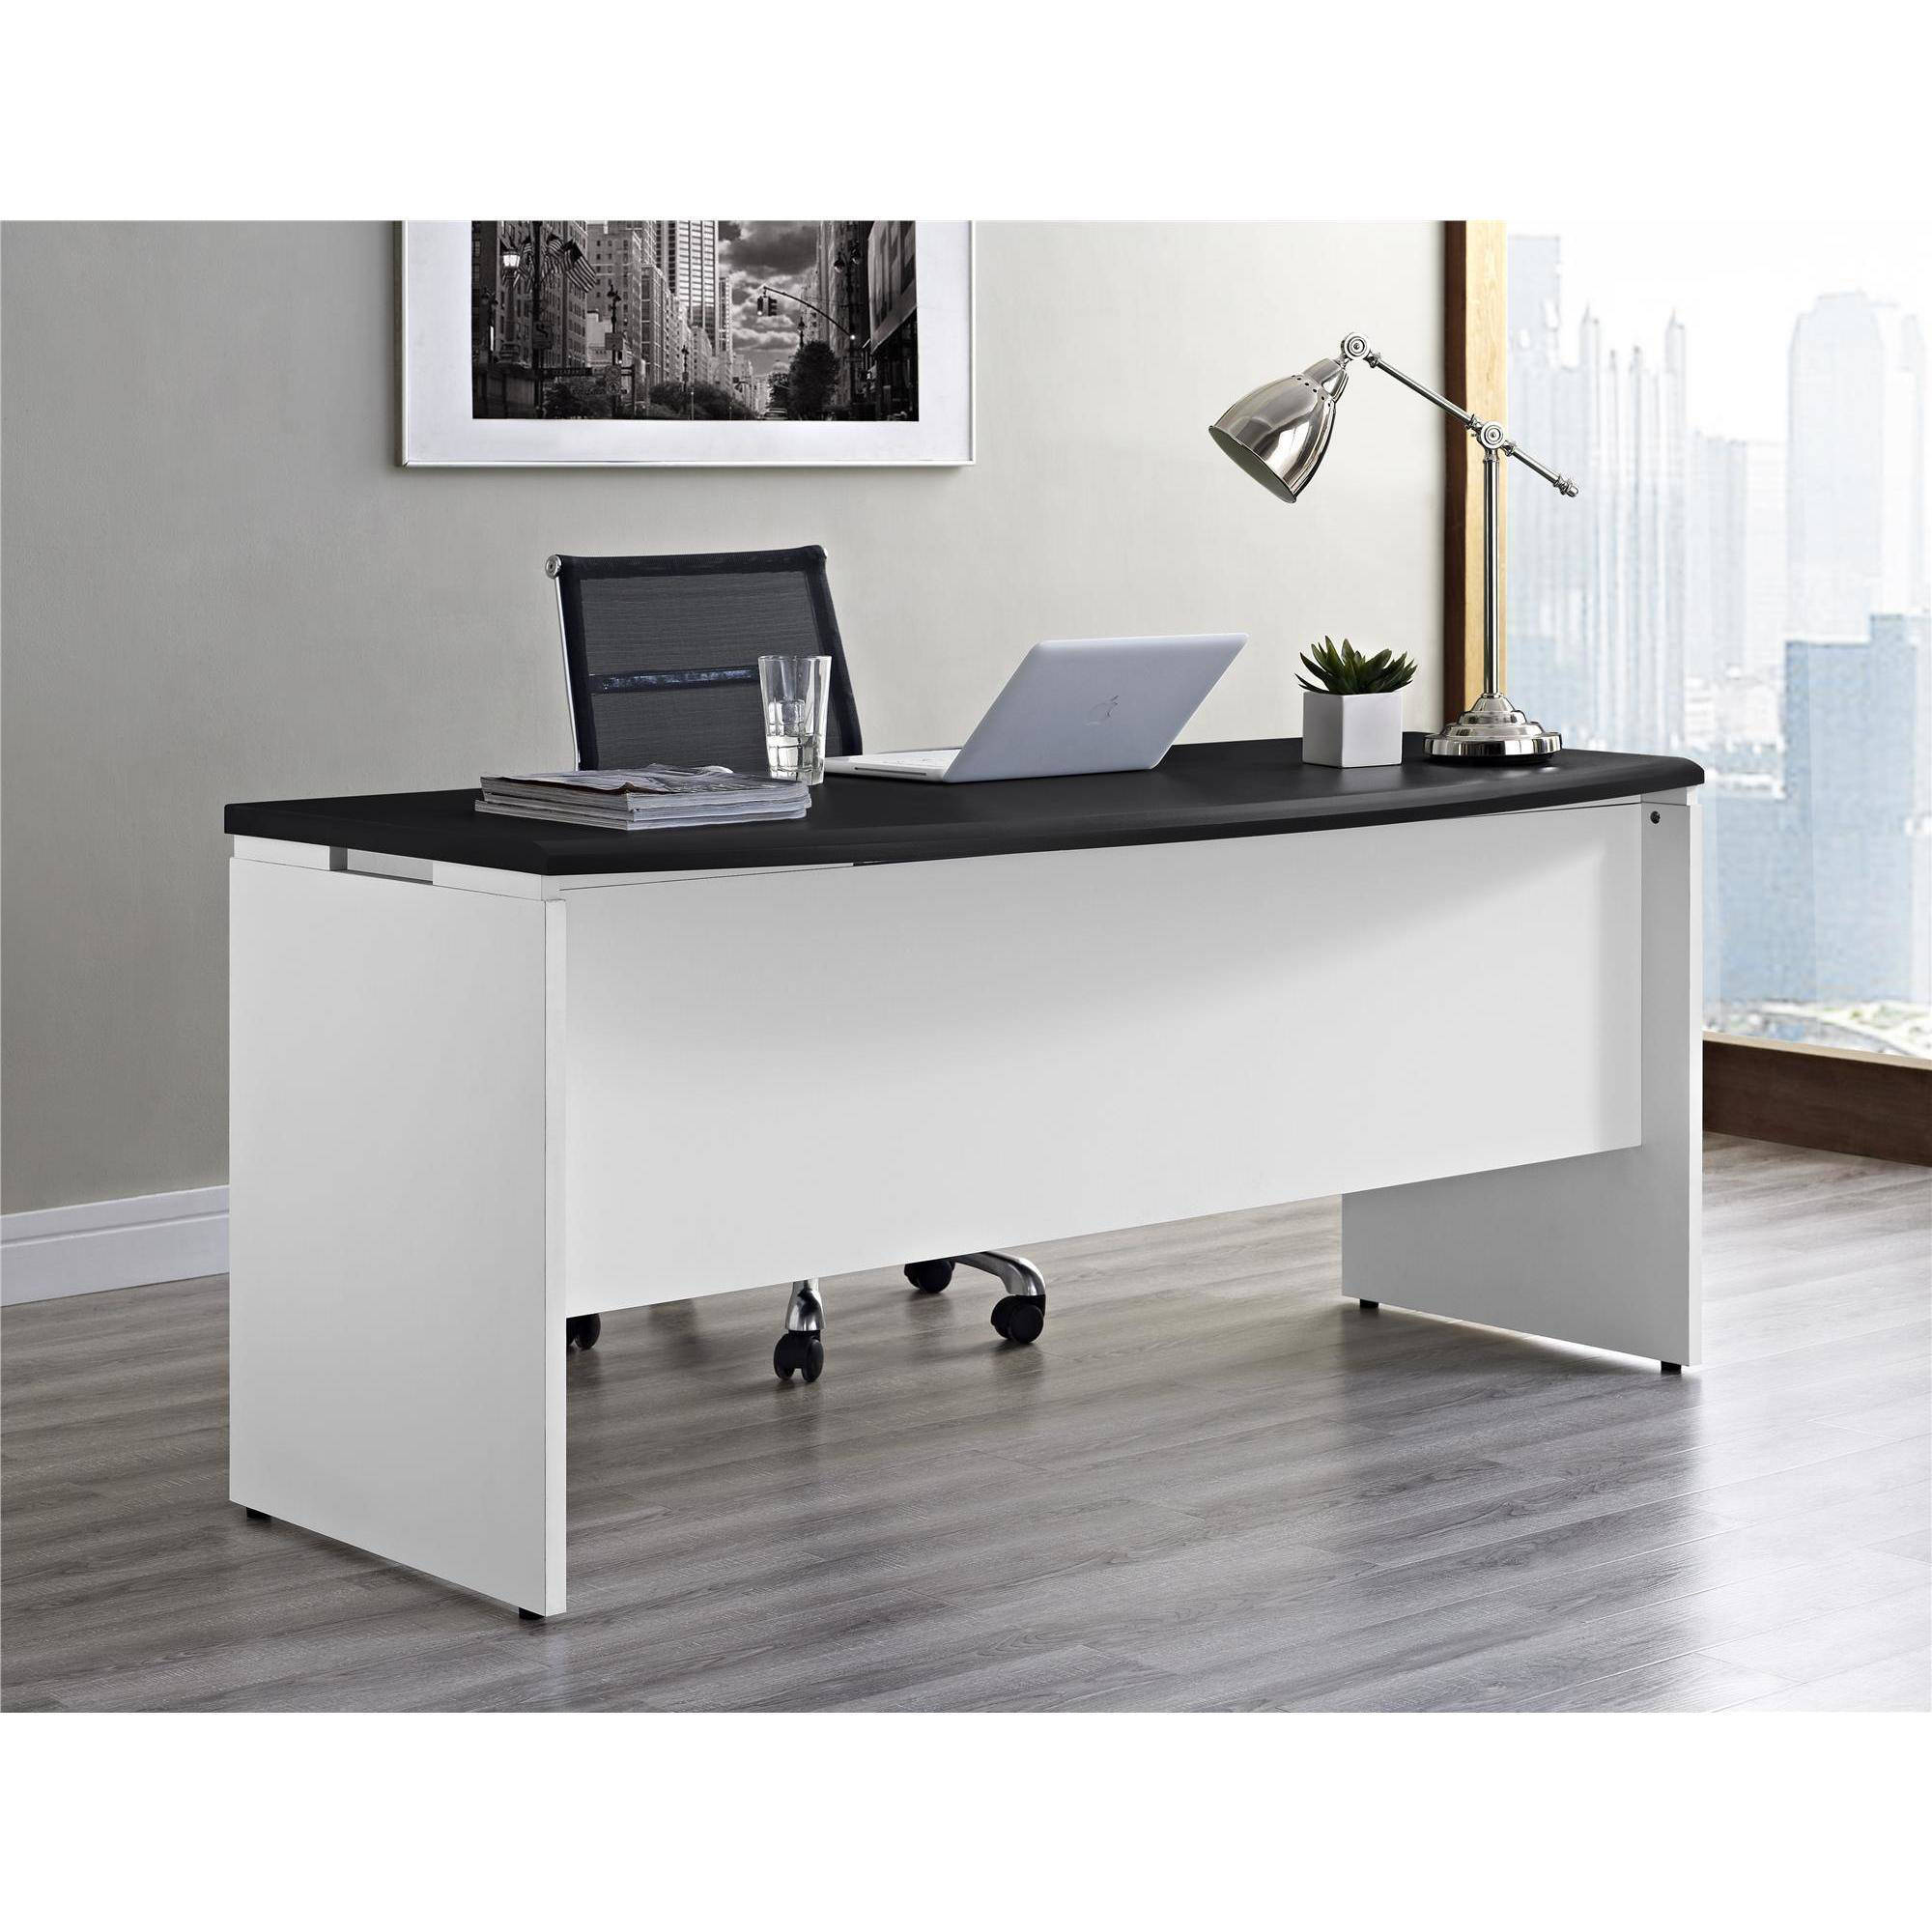 Pursuit Executive Desk, White